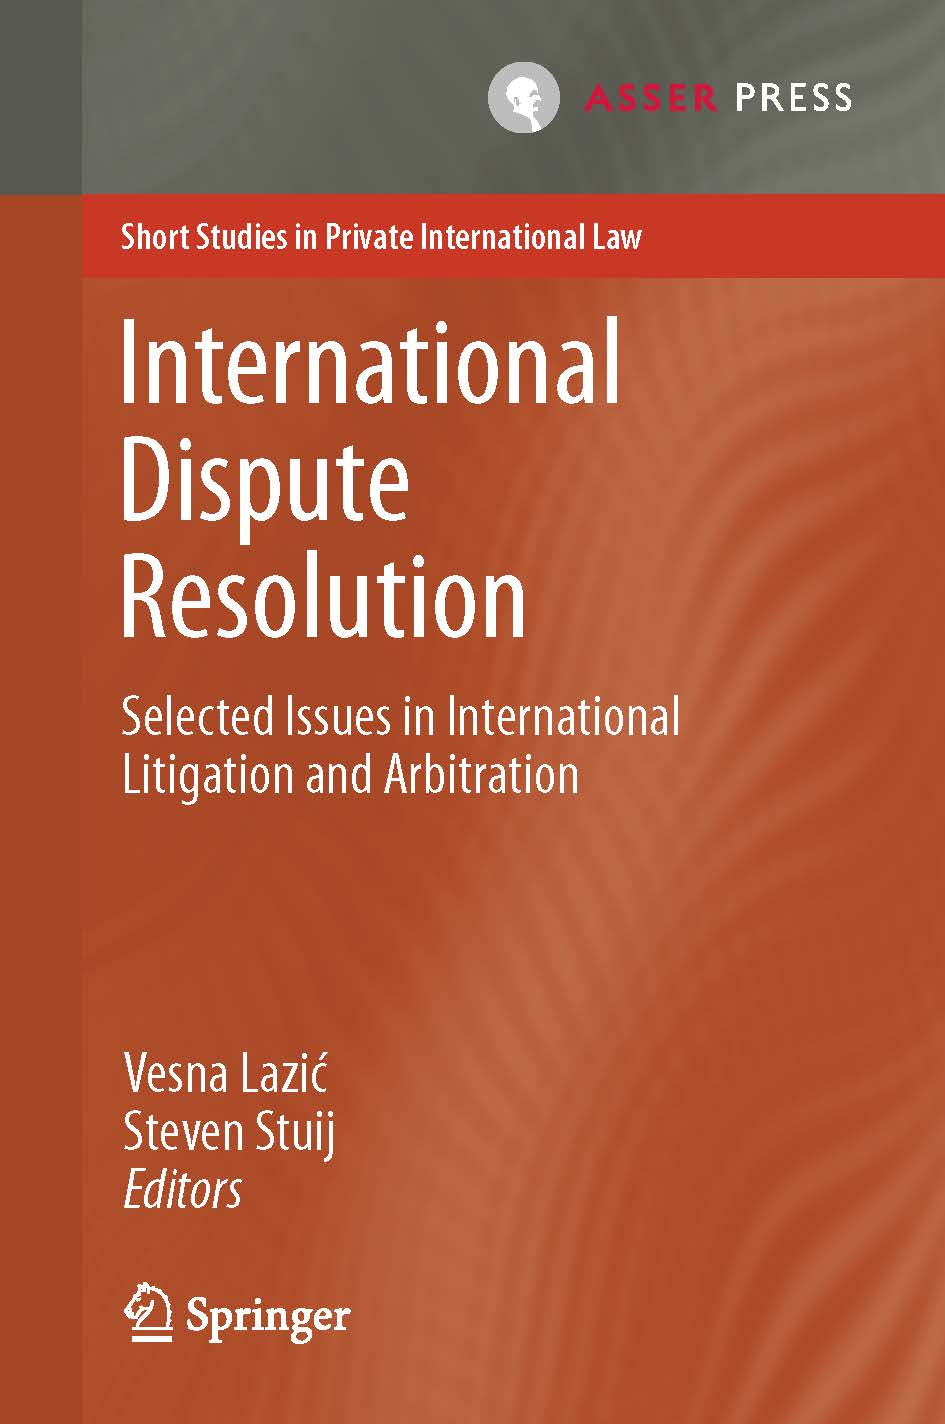 International Dispute Resolution - Selected Issues in International Litigation and Arbitration